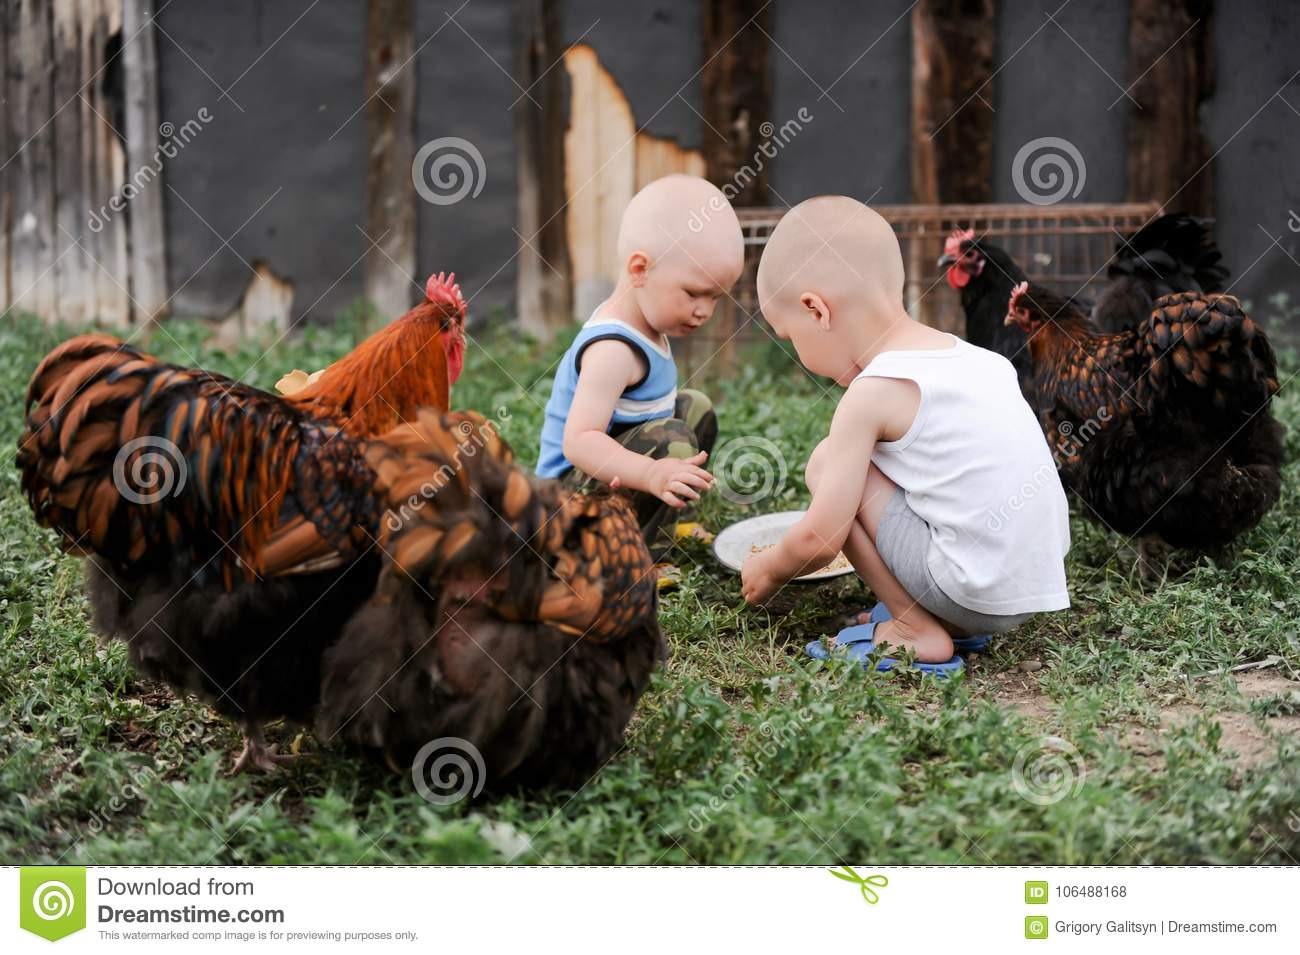 Boys feed chickens and farm animals on their father`s farm in the countryside